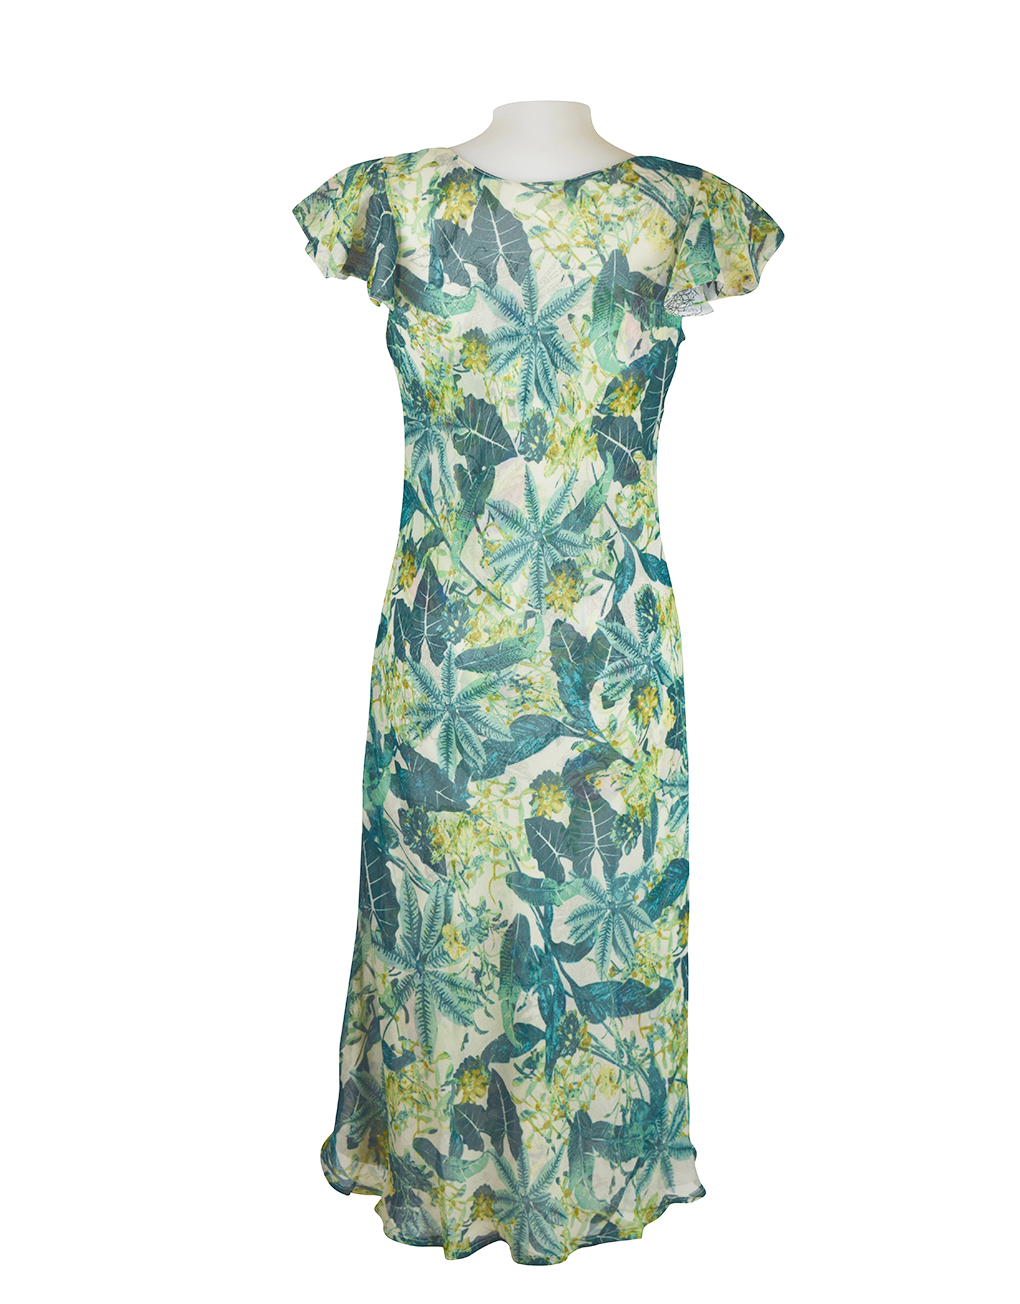 Paramour Reversible 2 In 1 Capped Sleeve White & Green Dress